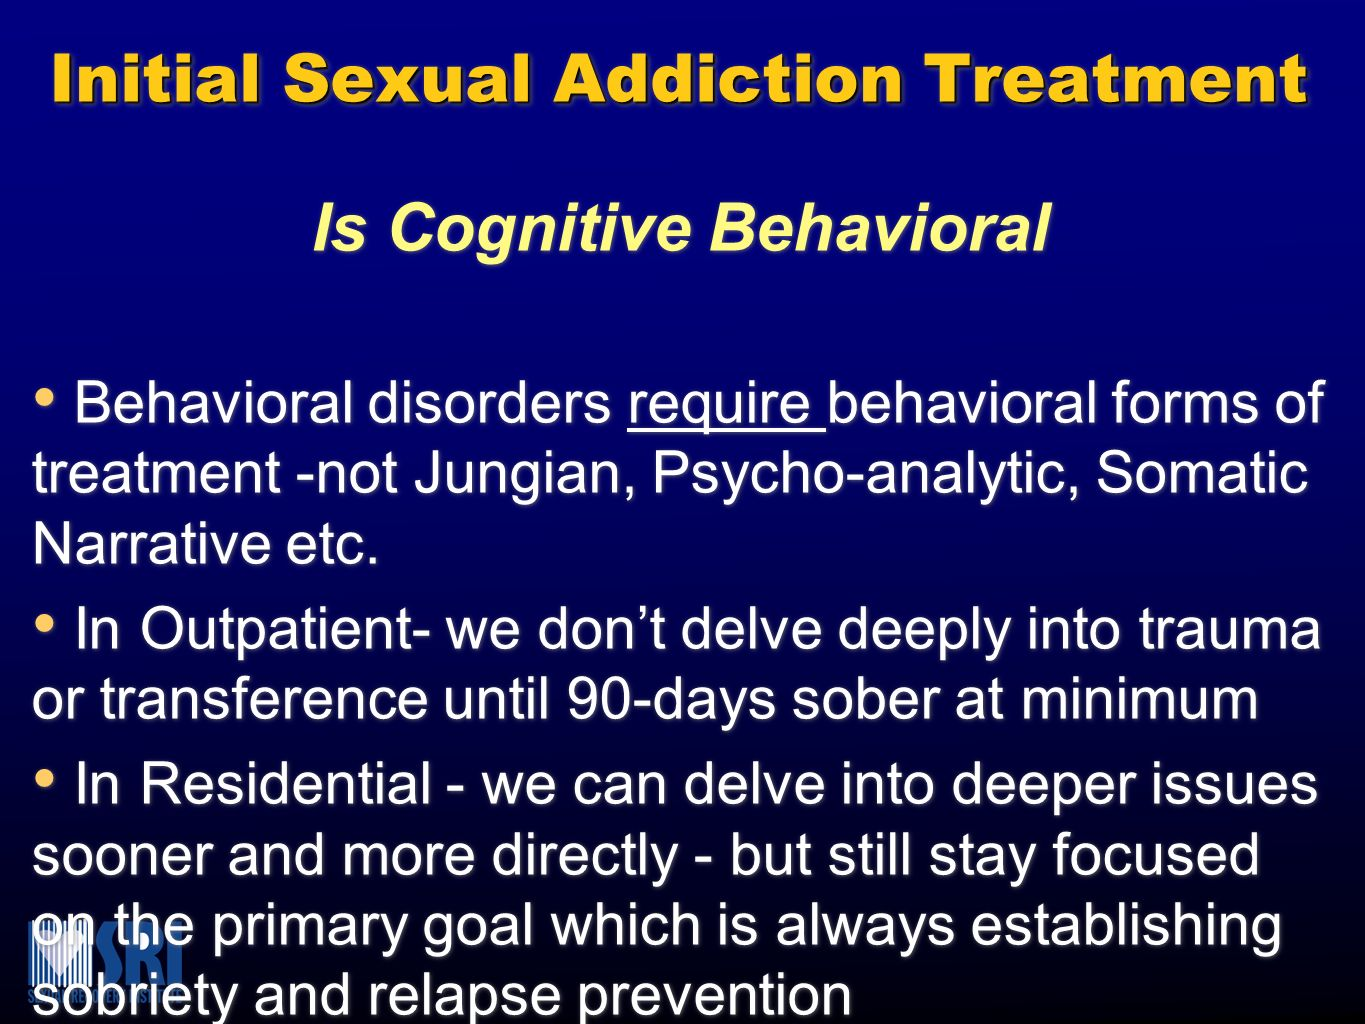 Required Treatment Steps When Working with Sex Addicts Do a thorough psycho-sexual history/assessment Identify the treatment goals of the client and then co- create a sexual sobriety contract aligned with those goals.